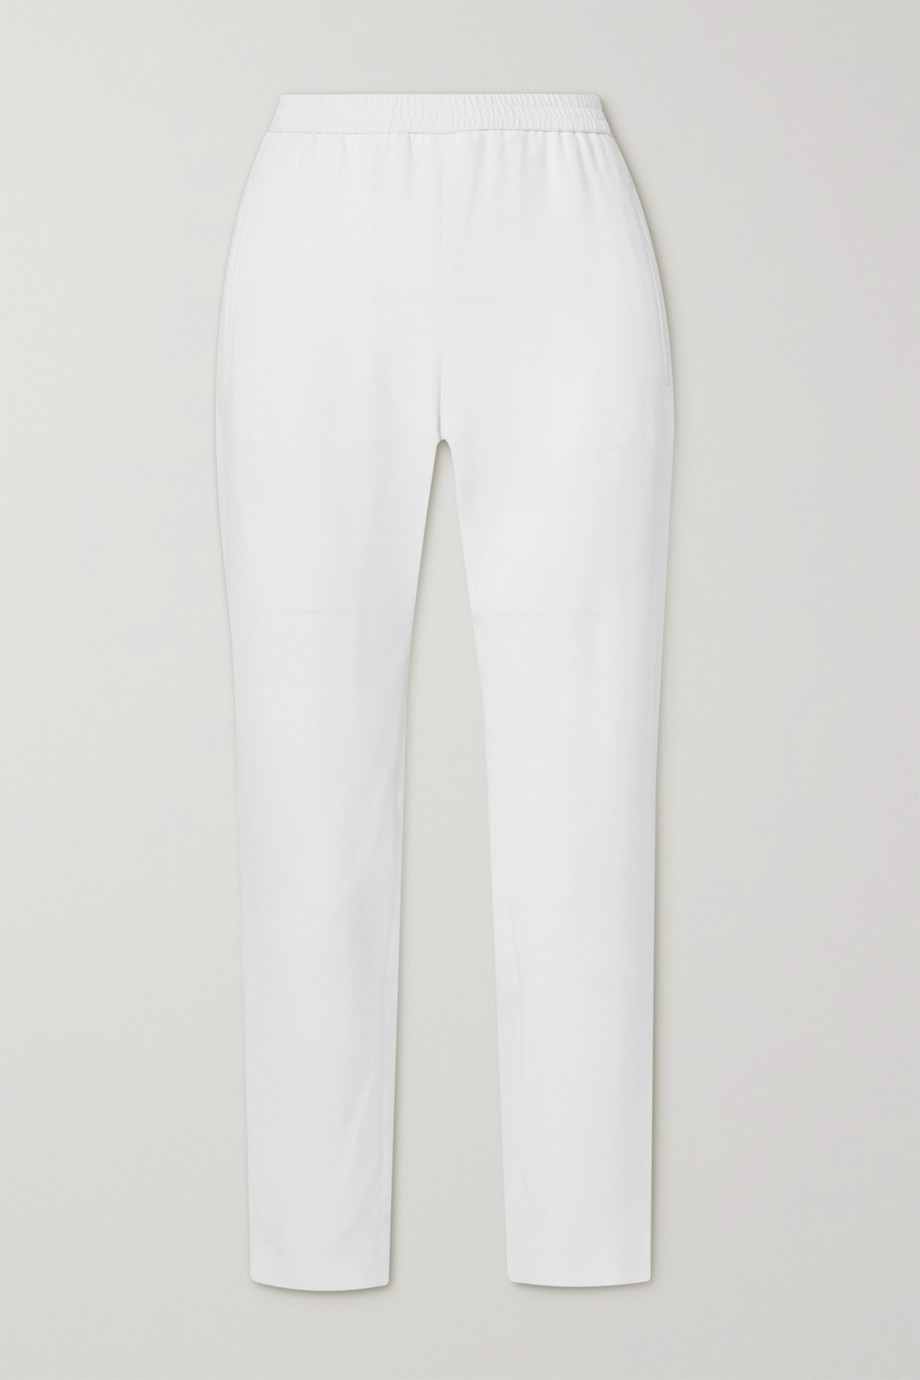 Stella McCartney + NET SUSTAIN Tamara stretch-crepe tapered pants